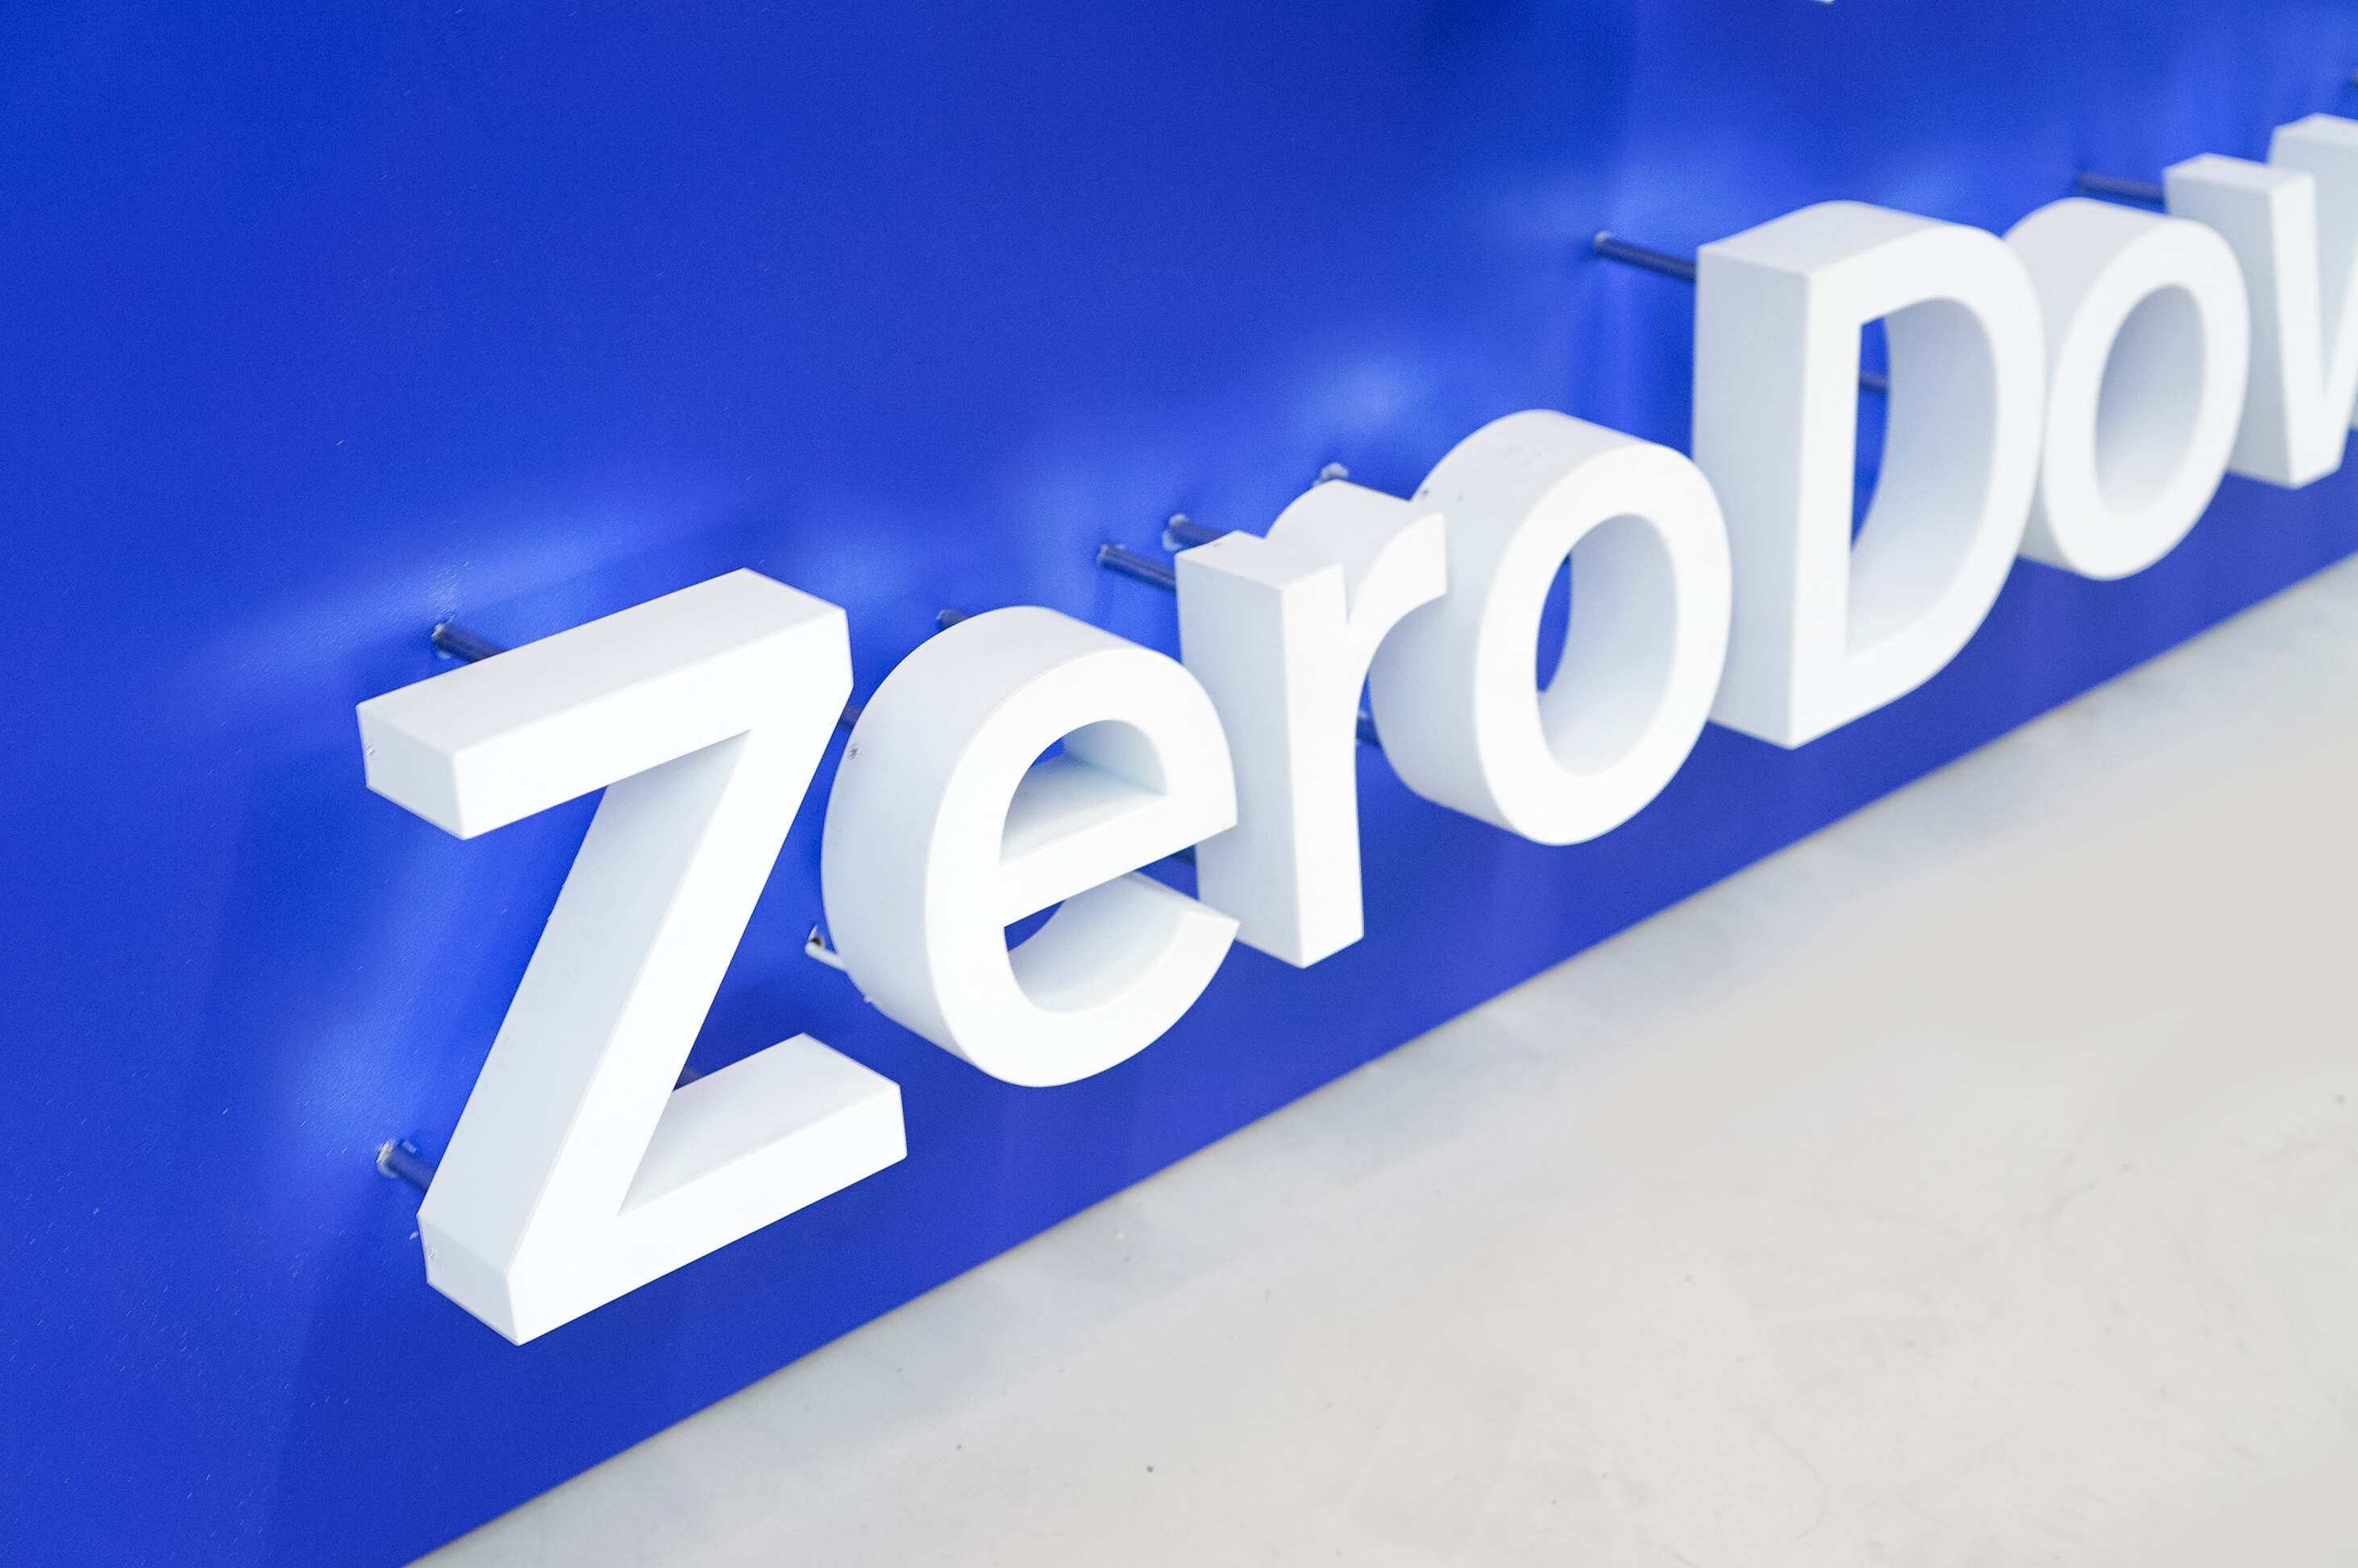 Back-lit, illuminated blue and white lobby sign for Zerodown, a company that couples technology and a debt-fueled real estate fund to allow home-buyers to forgo the traditional down payment process required to purchase a home.